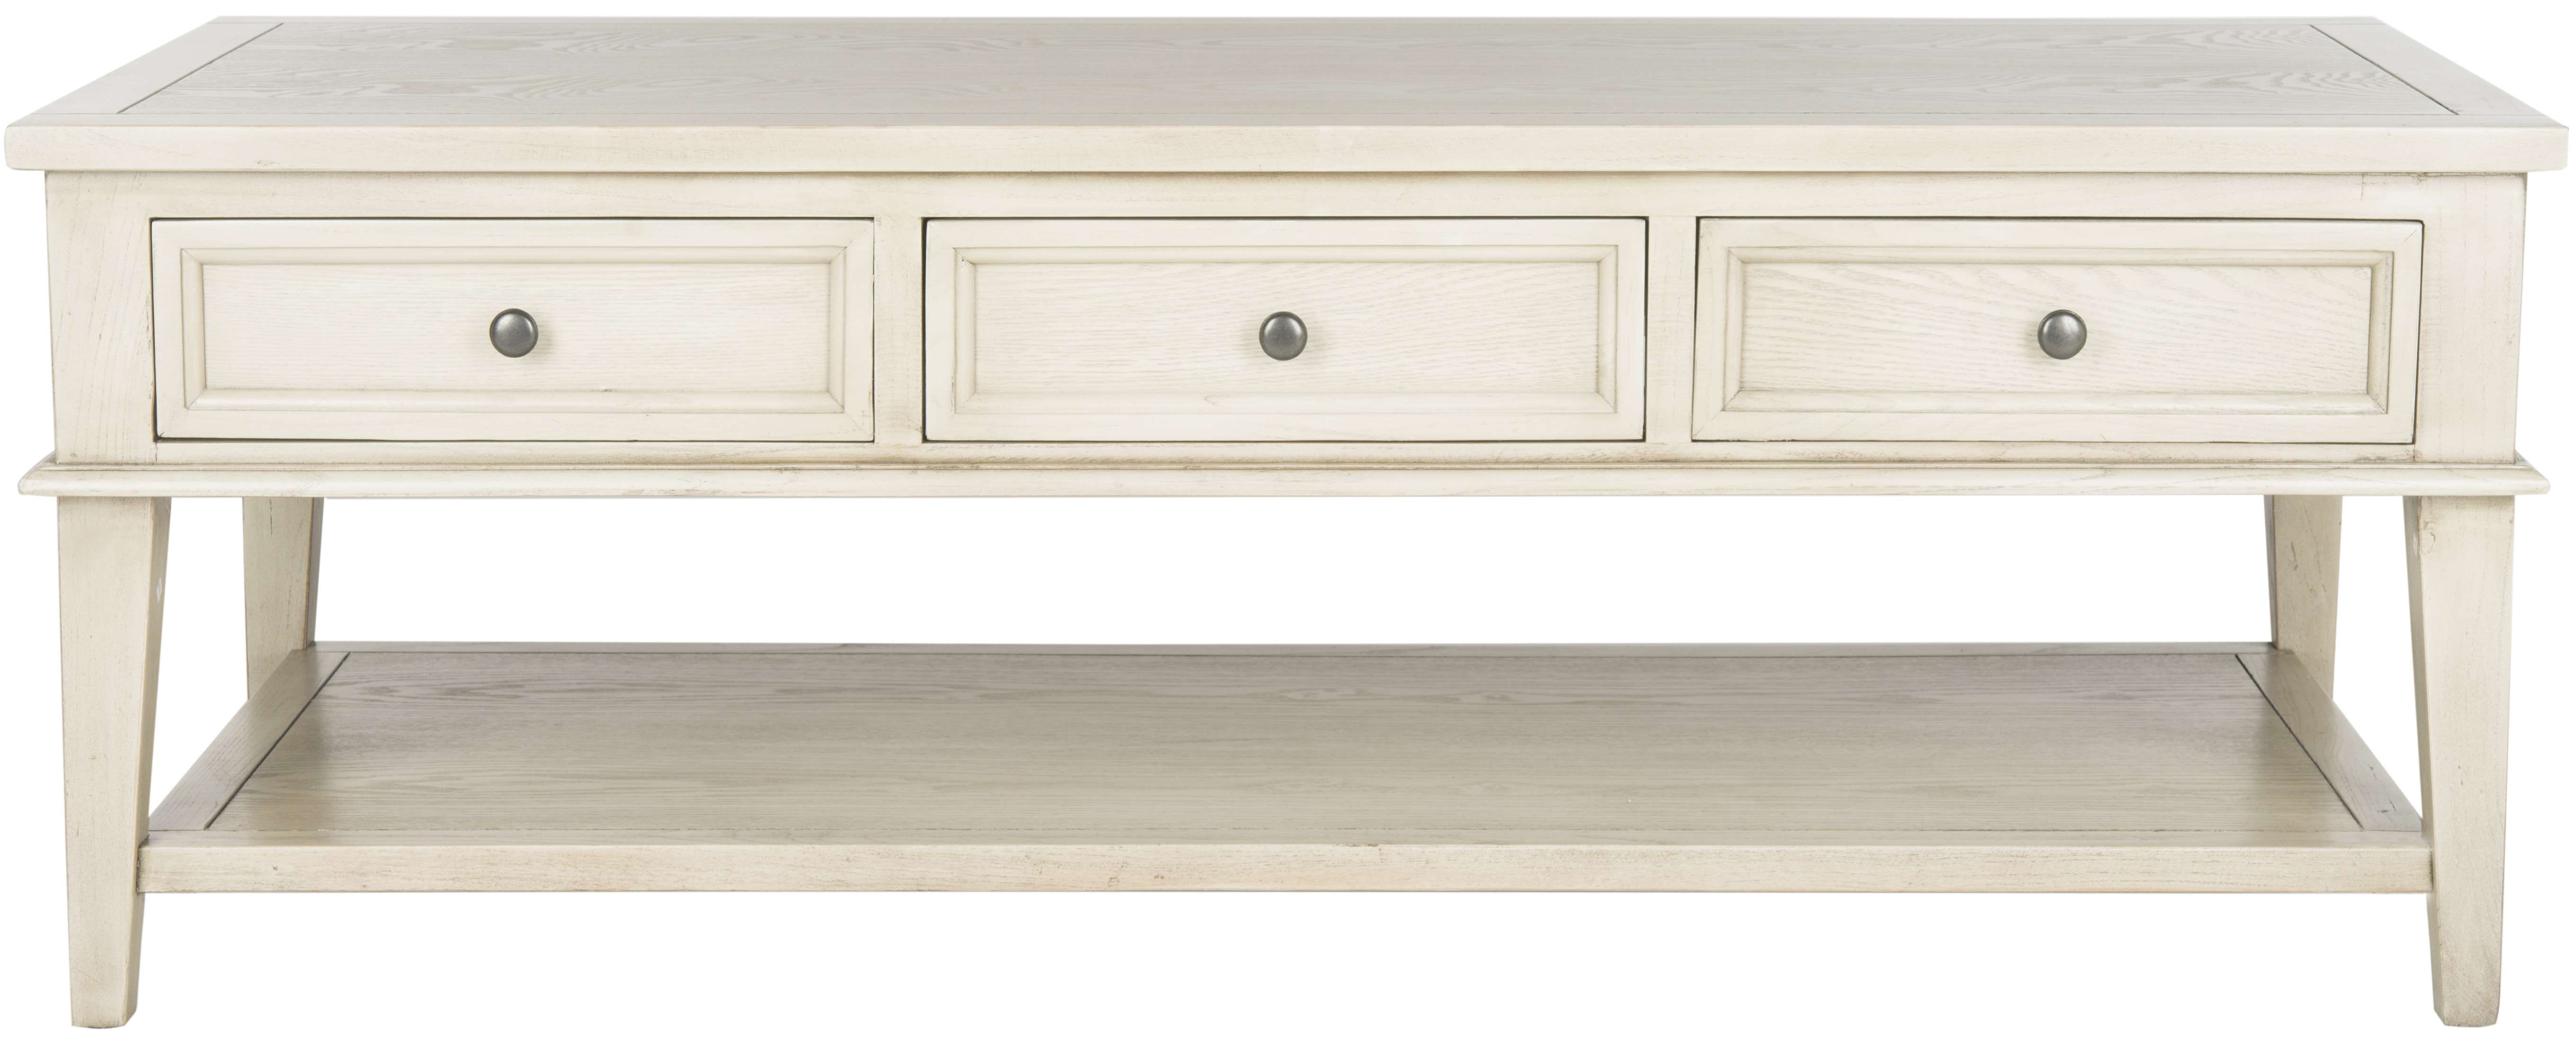 Beau Manelin White Wash Coffee Table With 3 Storage Drawers